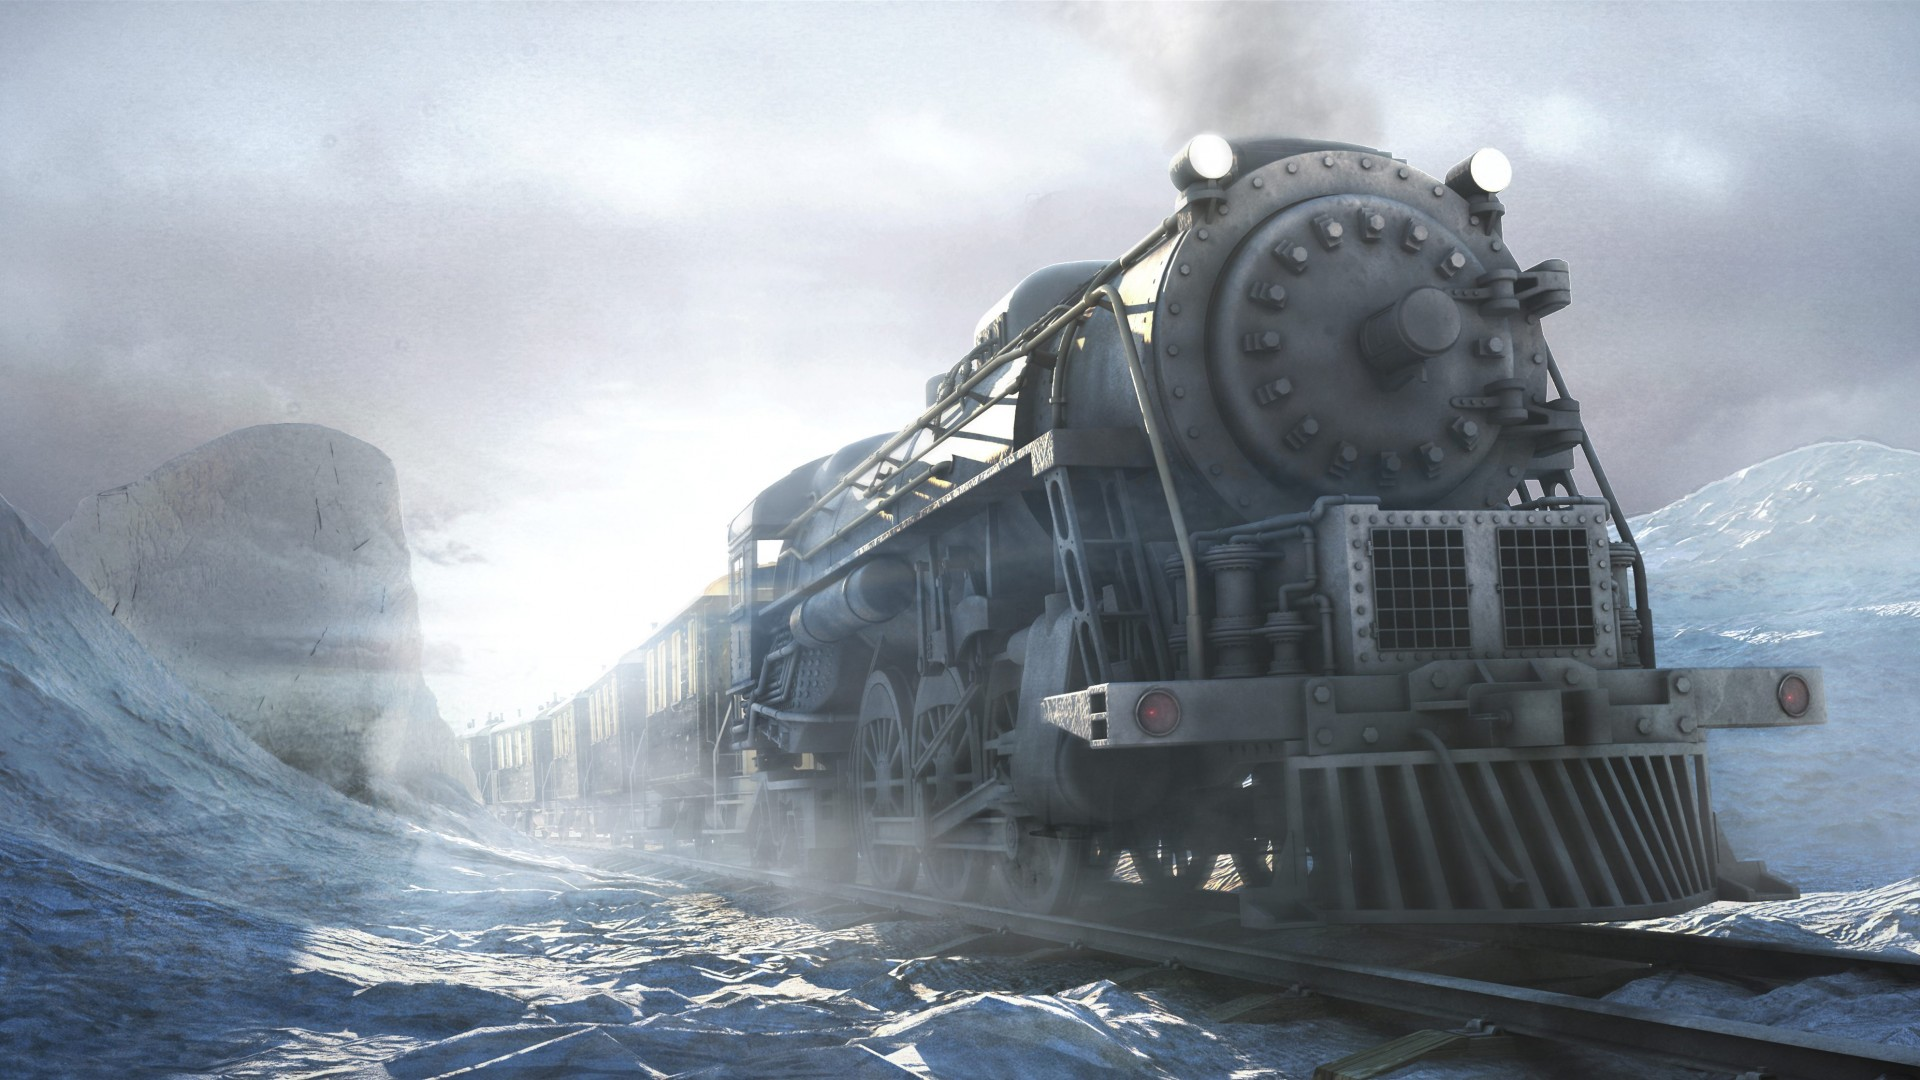 Syberia, game, quest, snow, winter, light, locomotive, train, PC, XBox one, PS4, Android, screenshot, 4k, 5k, 2015 (horizontal)